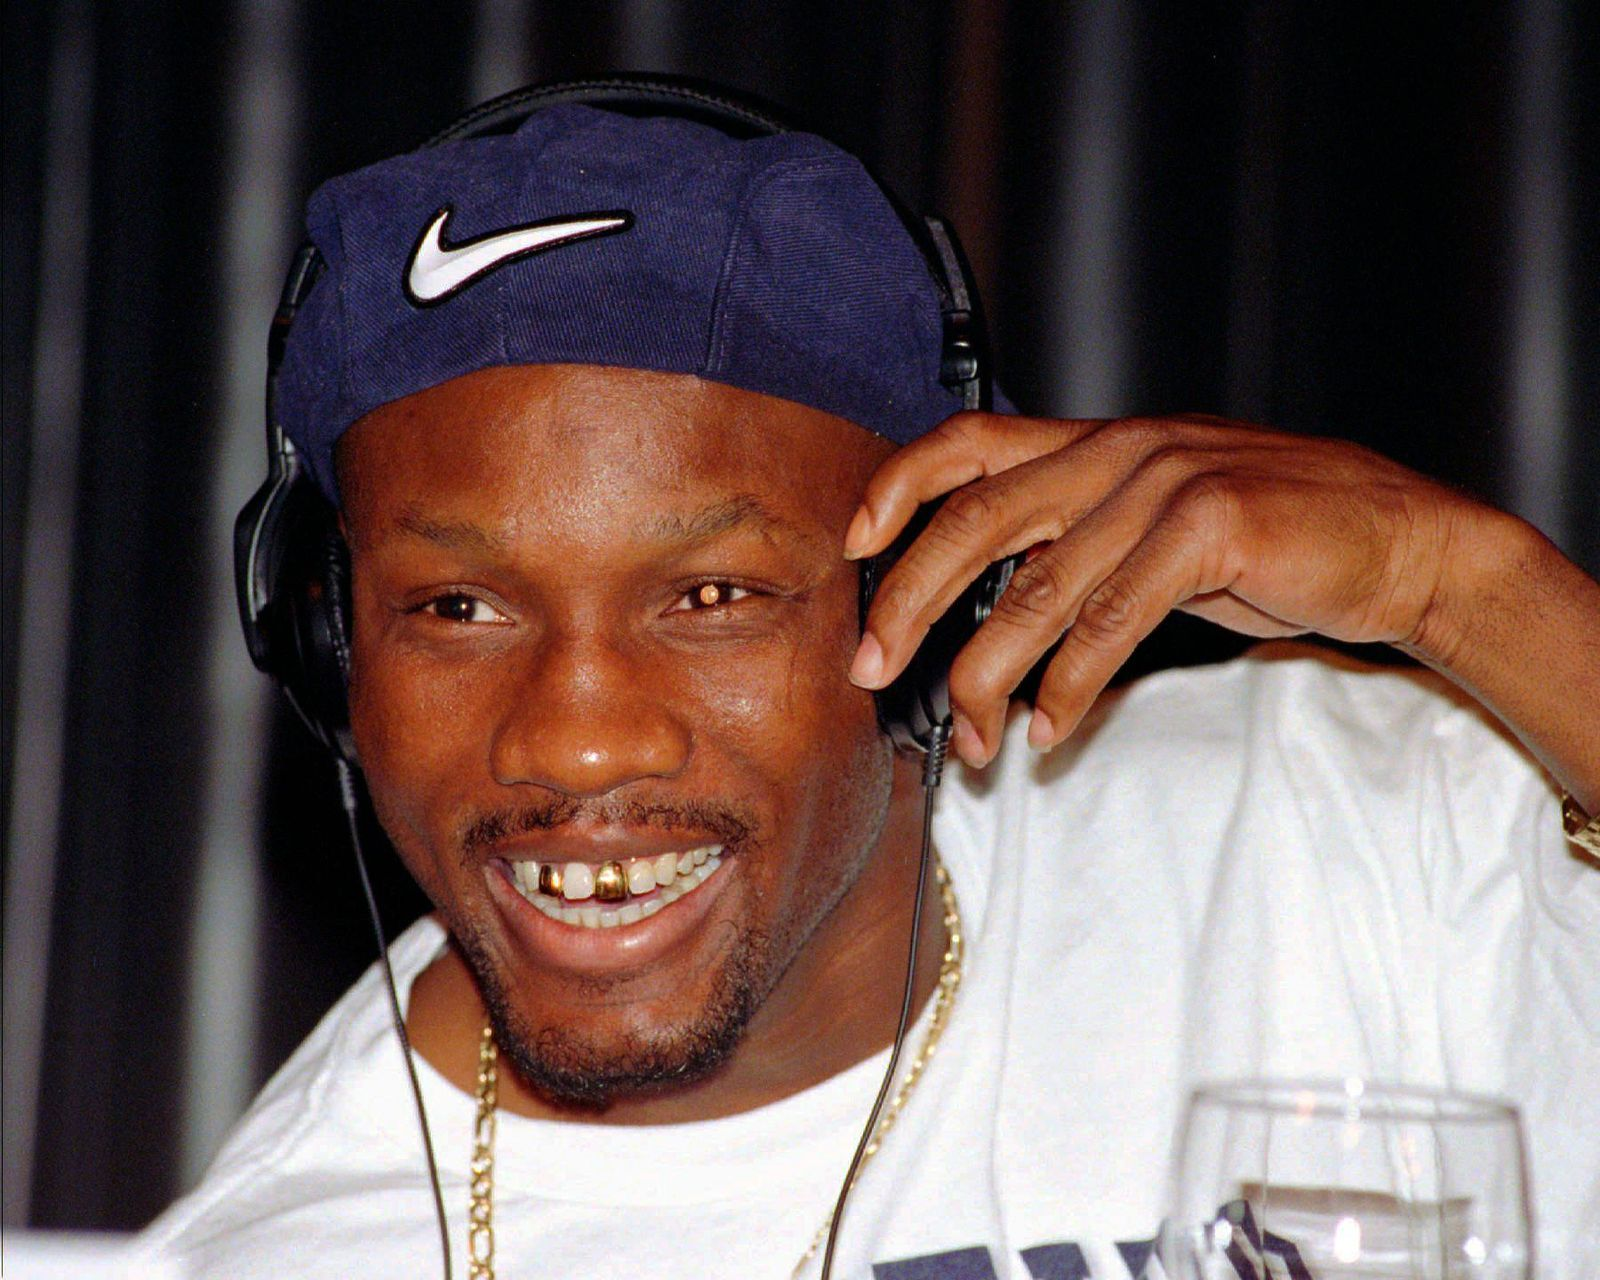 FILE - In this April 9, 1997, file photo, WBC welterweight champion Pernell Whitaker adjusts his head phones during a news conference in Las Vegas. Former boxing champion Pernell Whitaker has died after he was hit by a car in Virginia. He was 55. Police in Virginia Beach on Monday say Whitaker was a pedestrian when struck by the car Sunday night, July 14, 2019. The driver remained on the scene, where Whitaker was pronounced dead. (AP Photo/Lennox McLendon, File)